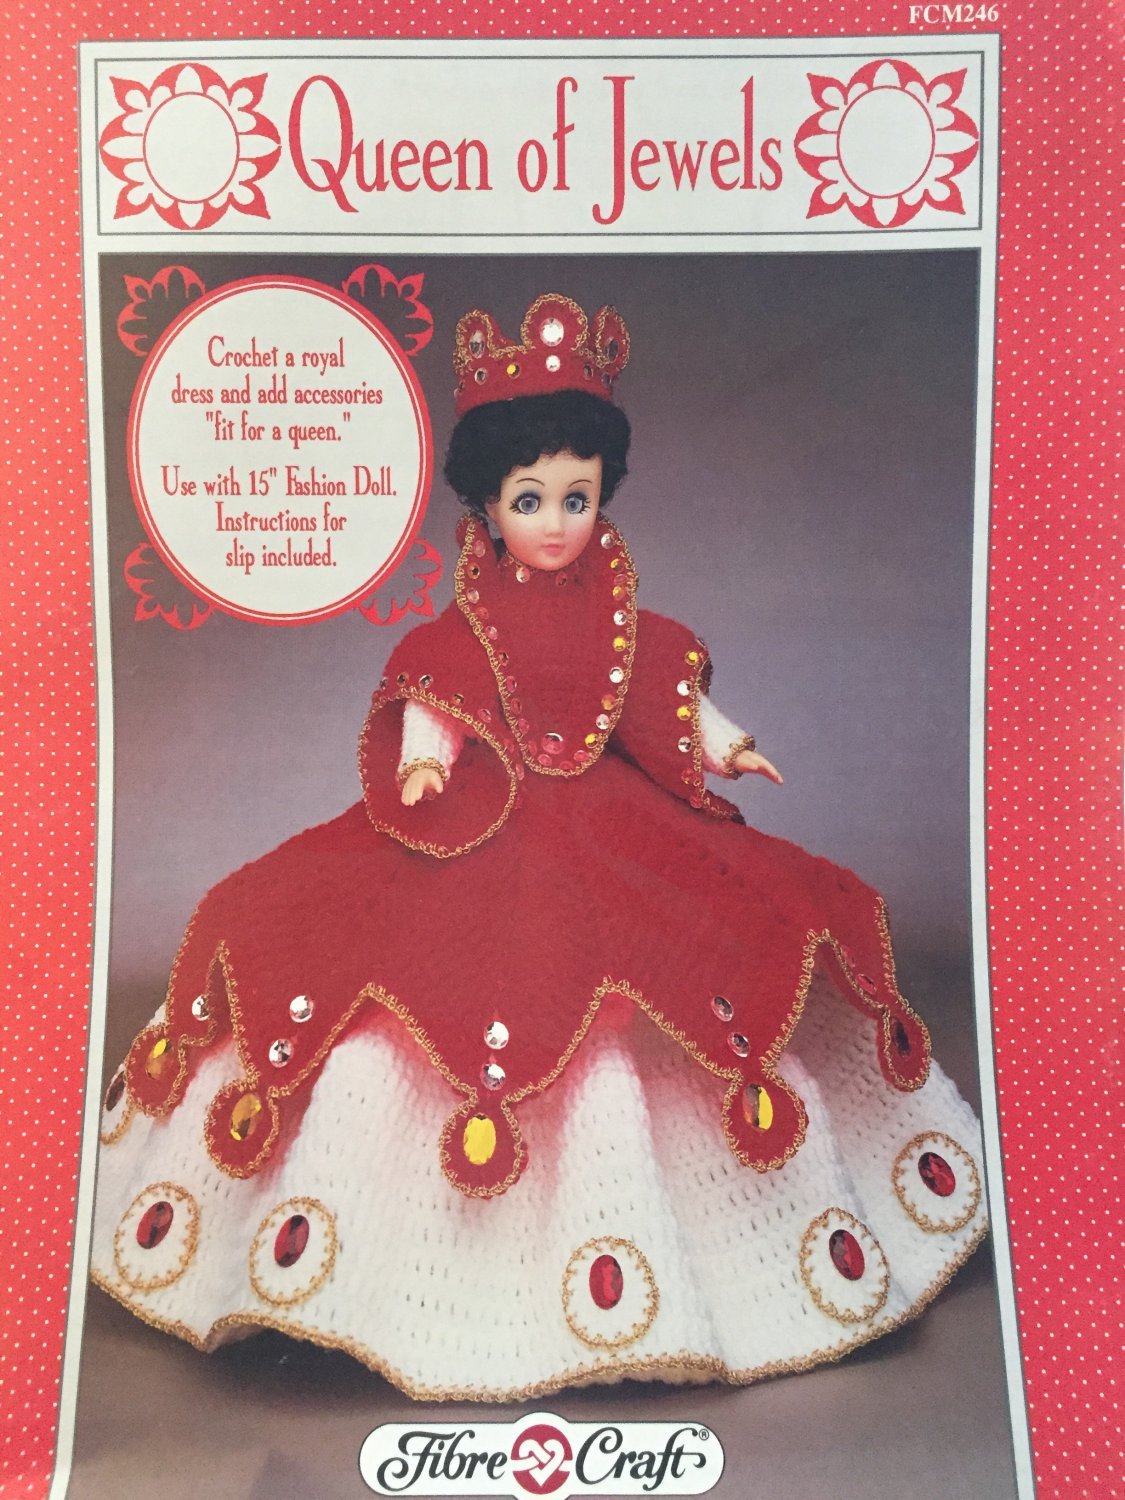 Queen of Jewels Doll Gown for 15¨ doll Crochet Pattern Fibre Craft FCM246